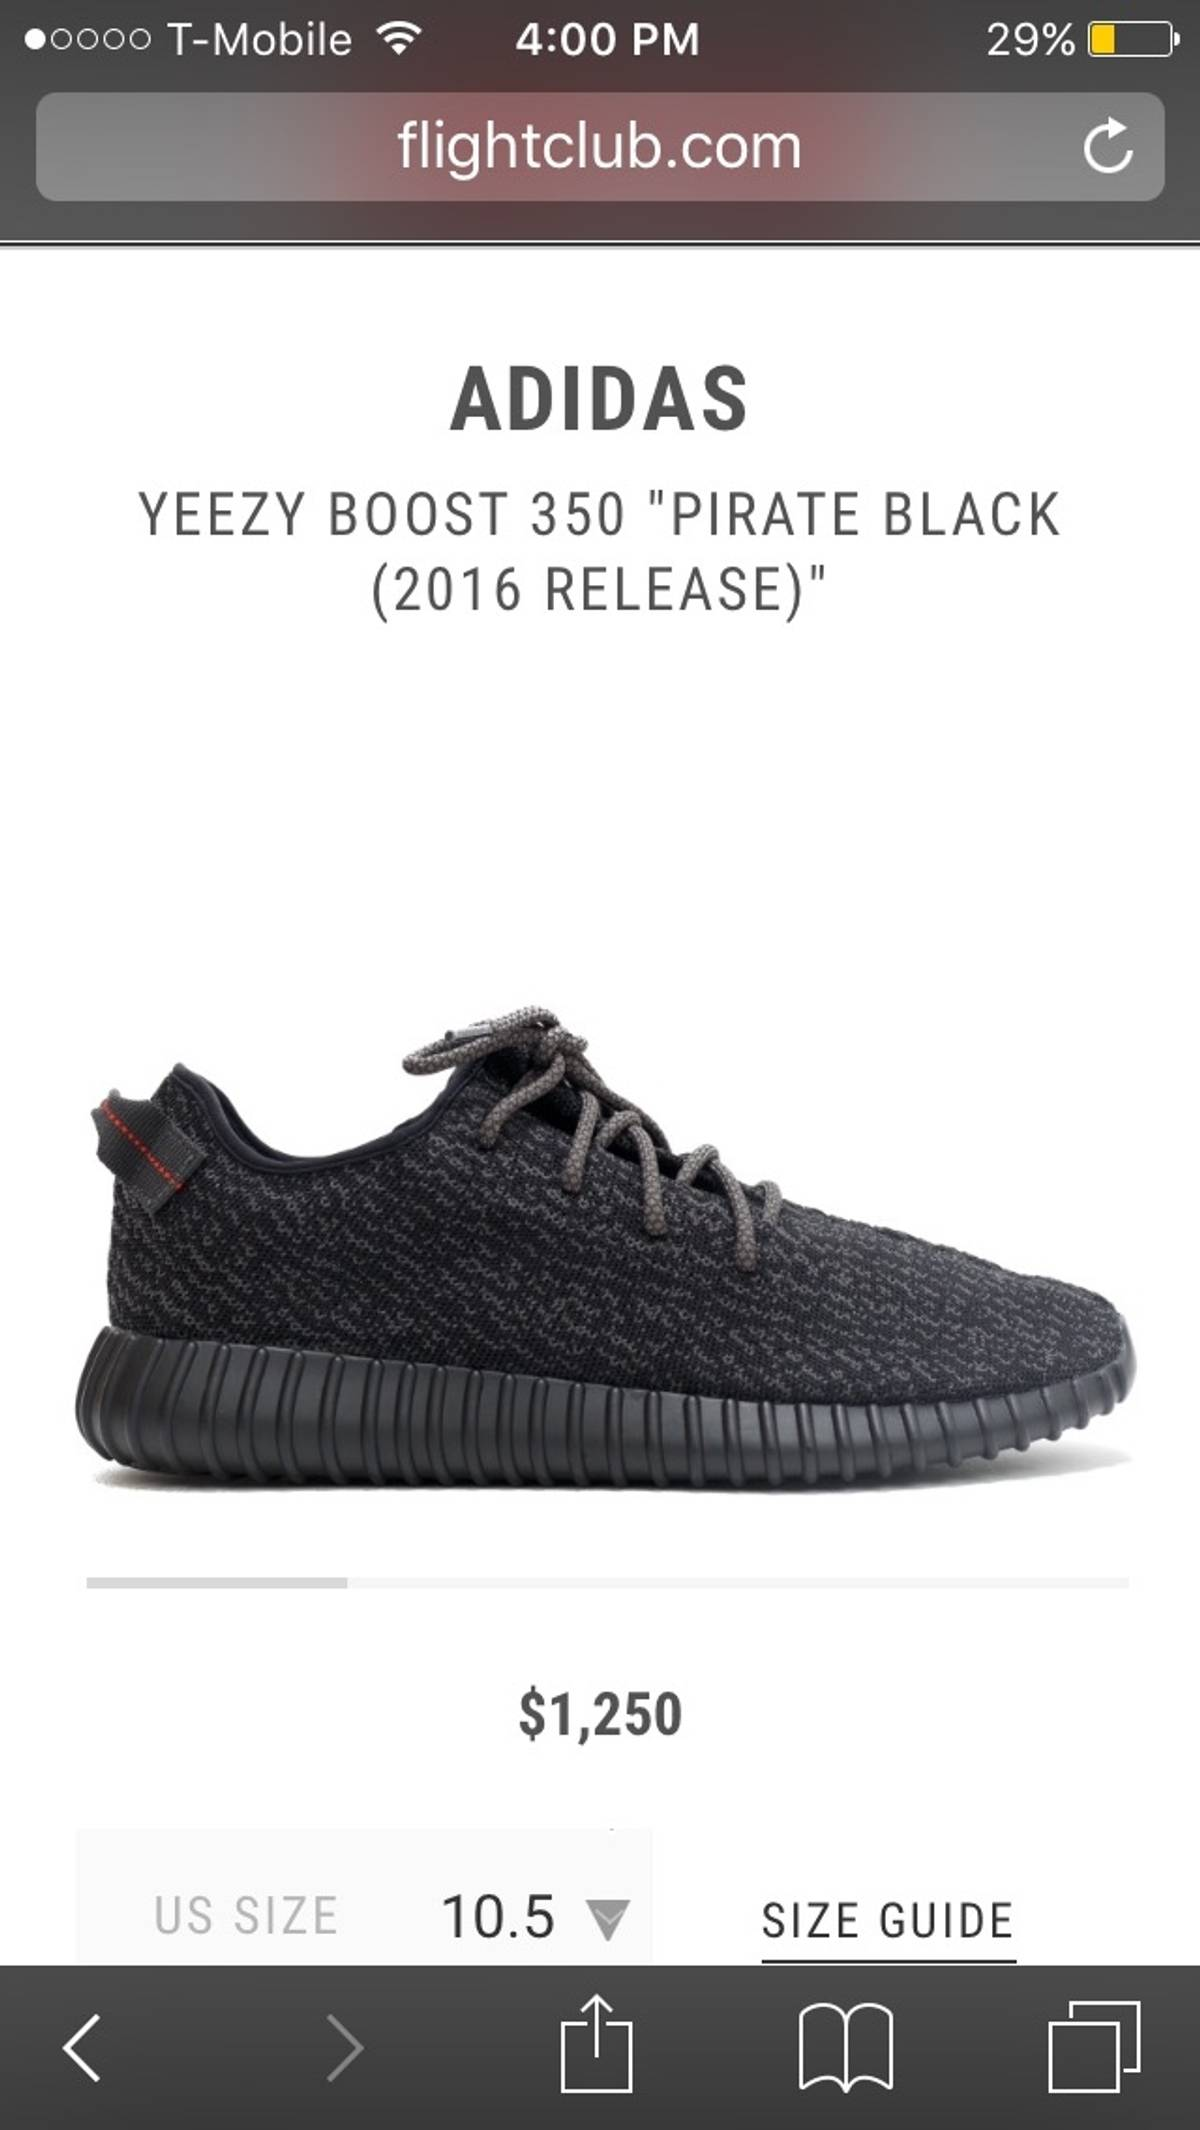 77d9dc7e22c9a Yeezy Boost Pirate Blacks 350 Size 10 - Low-Top Sneakers for Sale - Grailed